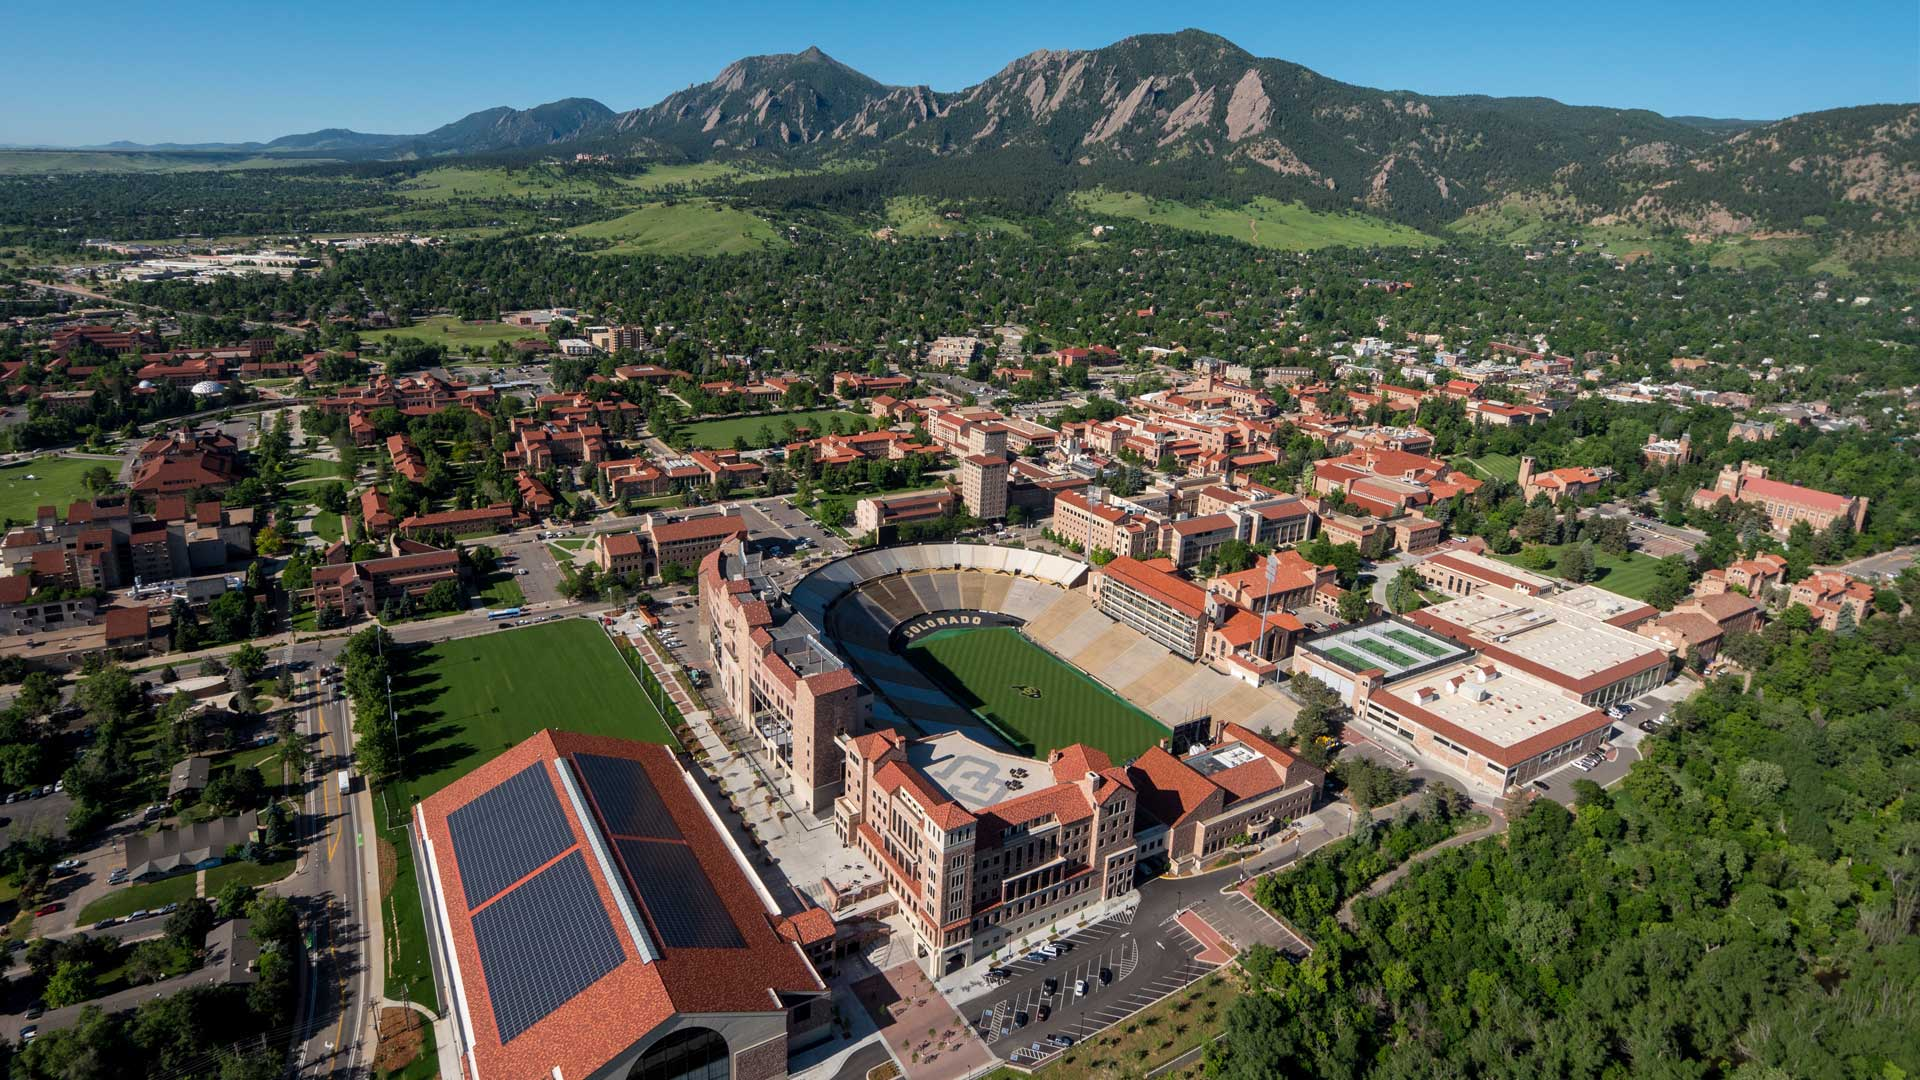 CU To Implement Clear Bag Policy At Folsom Field Coors Events Center Glenn Asakawa University Of Colorado